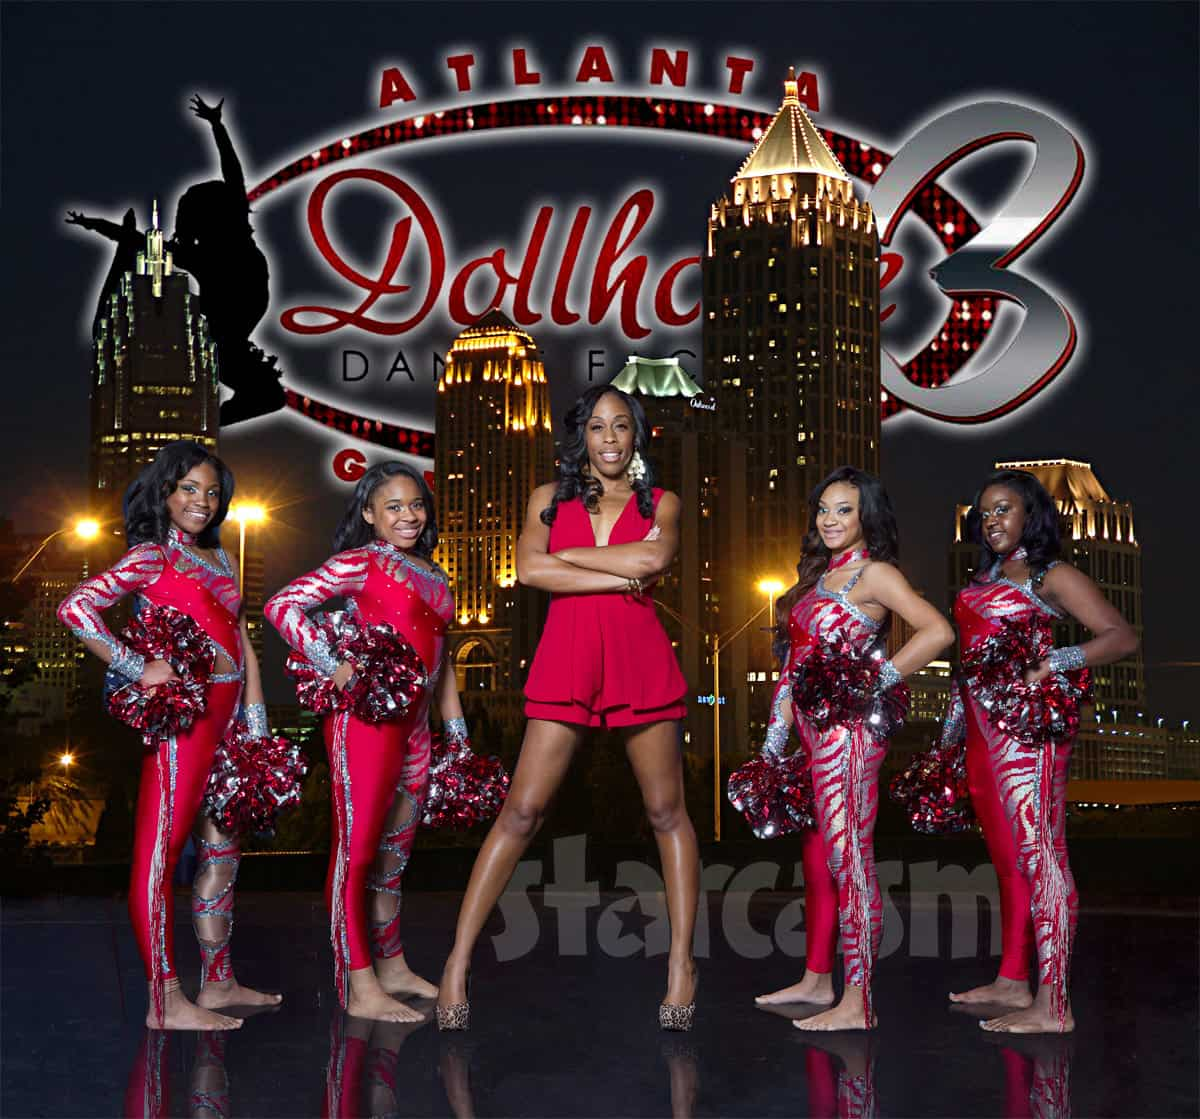 Bring It Miss D Opening Dollhouse Dance Factory In Atlanta